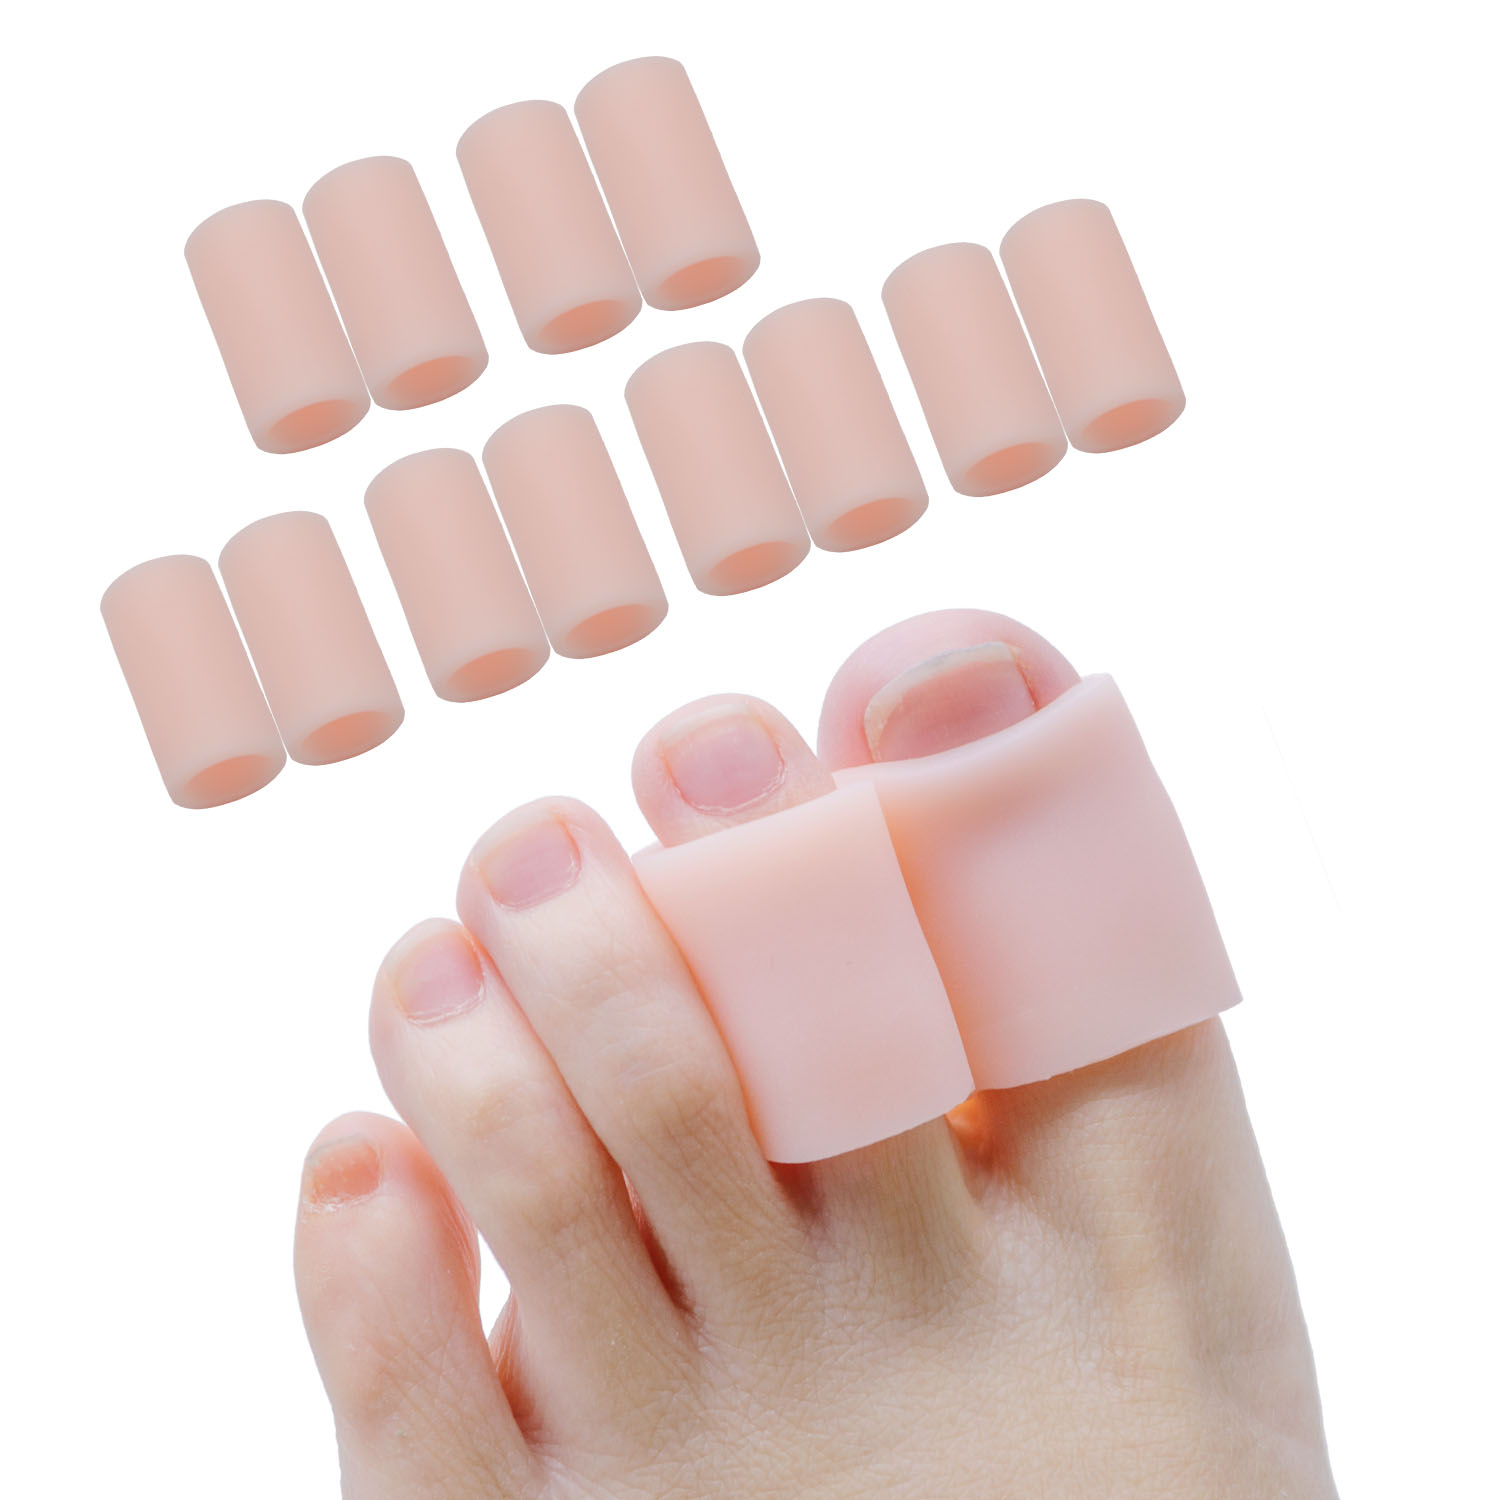 Sumifun 2Pieces Transparent Gel Fingers Protector Corn Corrector Hammer Toe Separator Foot Suport Z55302